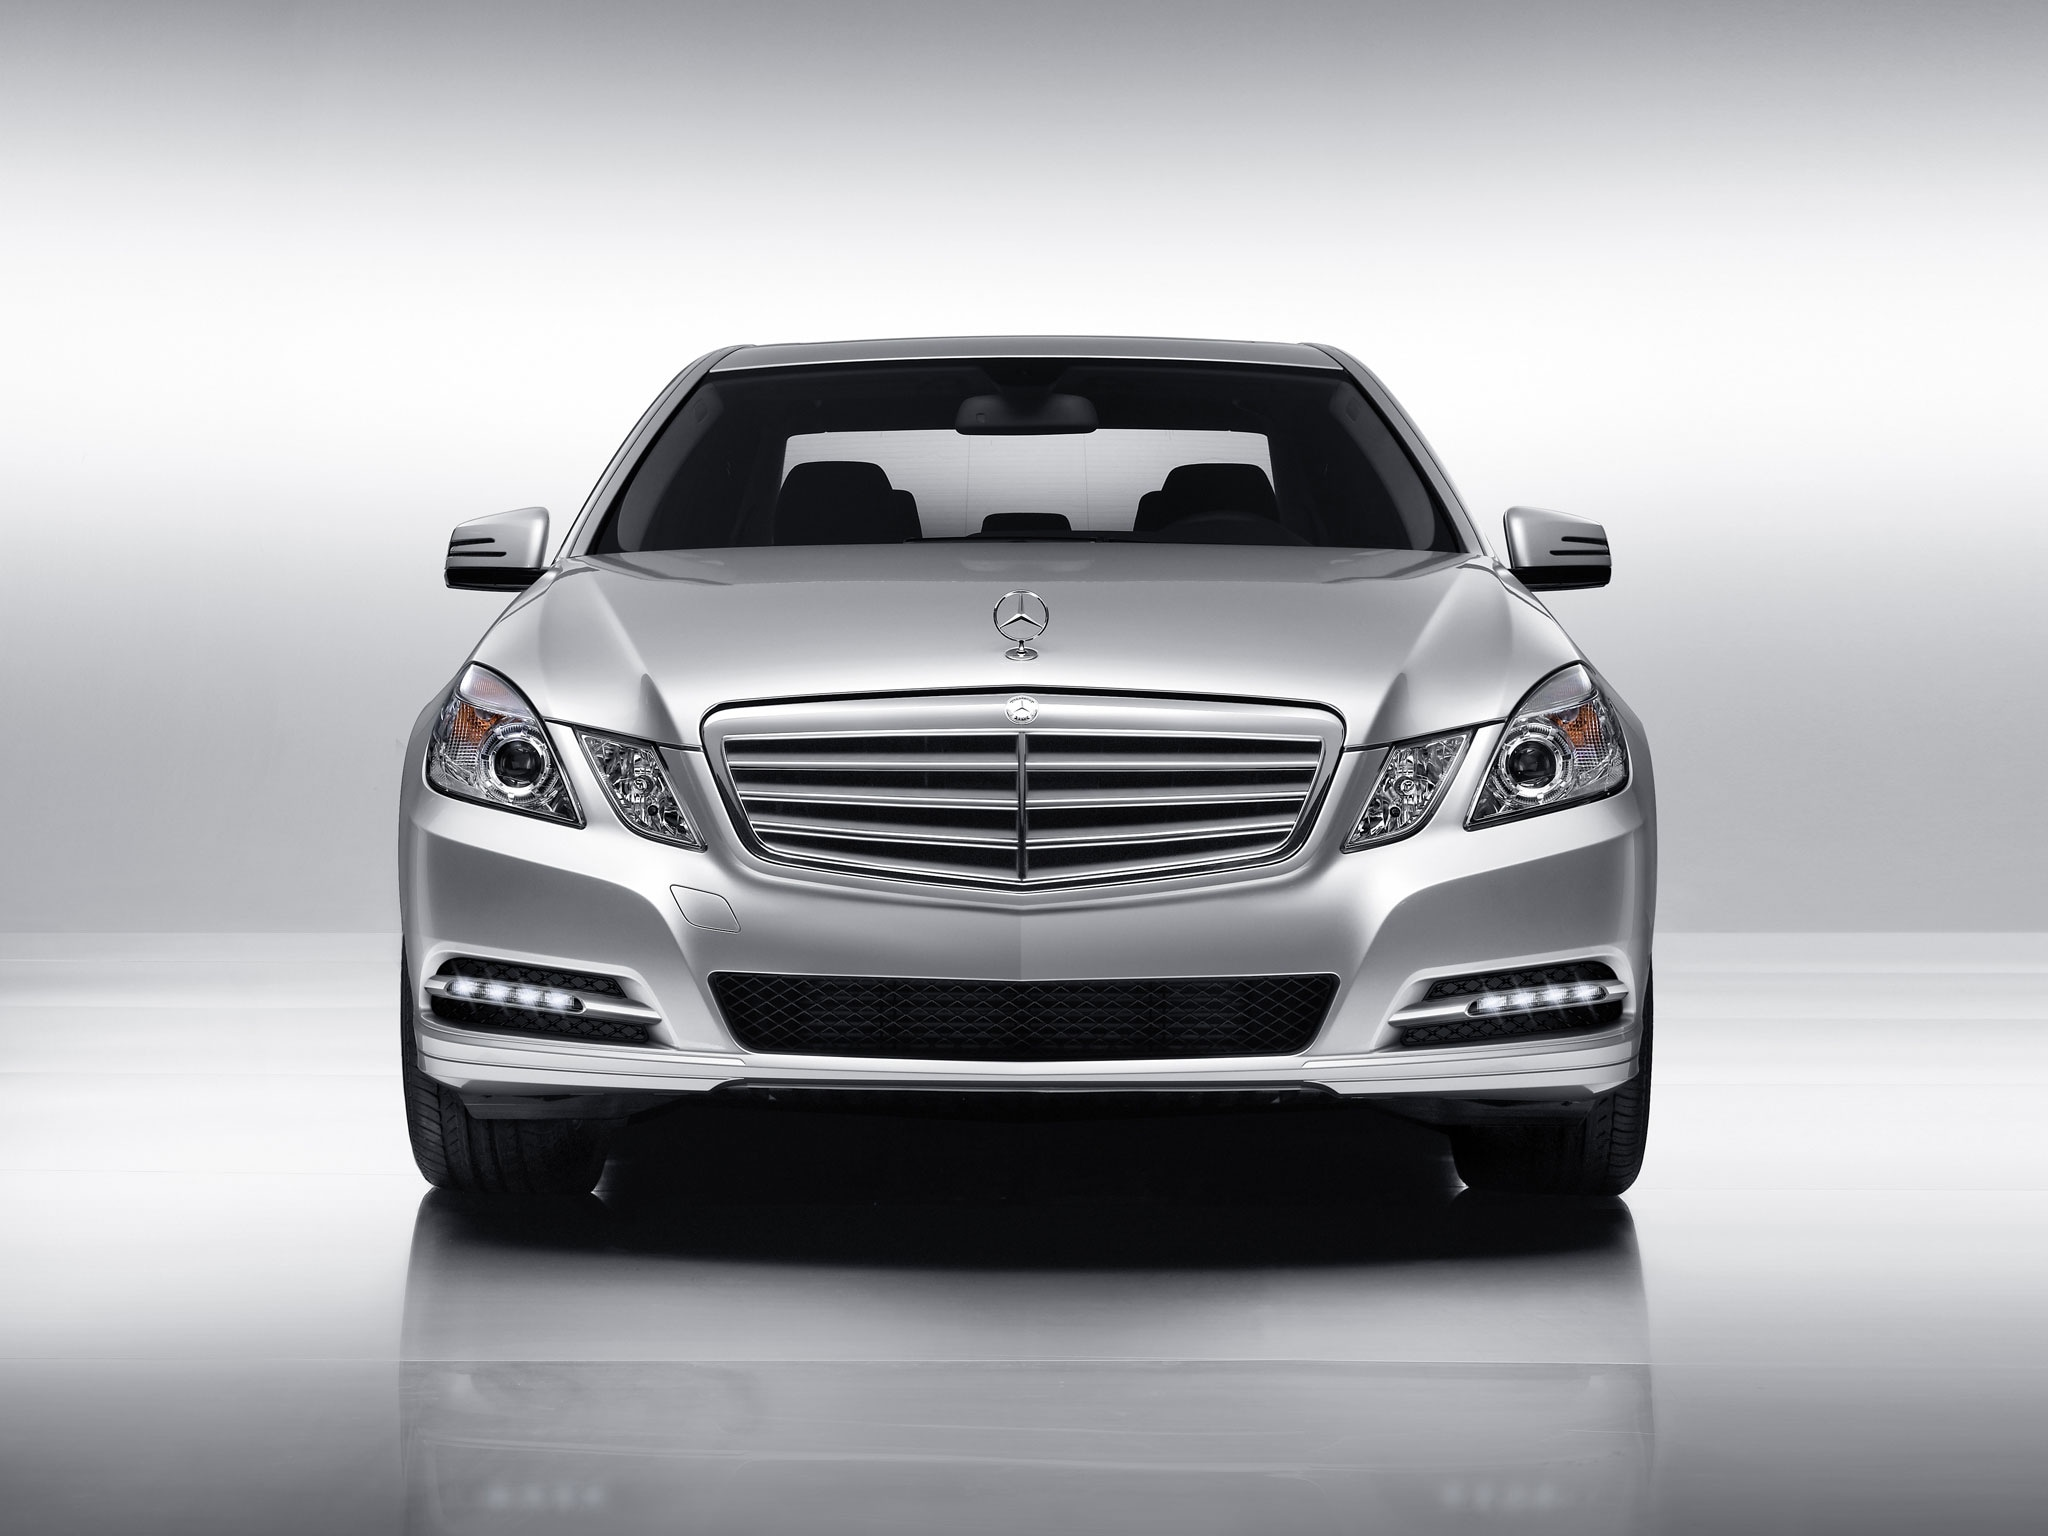 Fields motorcars mercedes benz usa releases impressive 2011 sales in a recent release of 2011 sales figures mercedes benz usa reported sales of 264460 vehicles the highest annual volume on record with a 175 increase altavistaventures Image collections